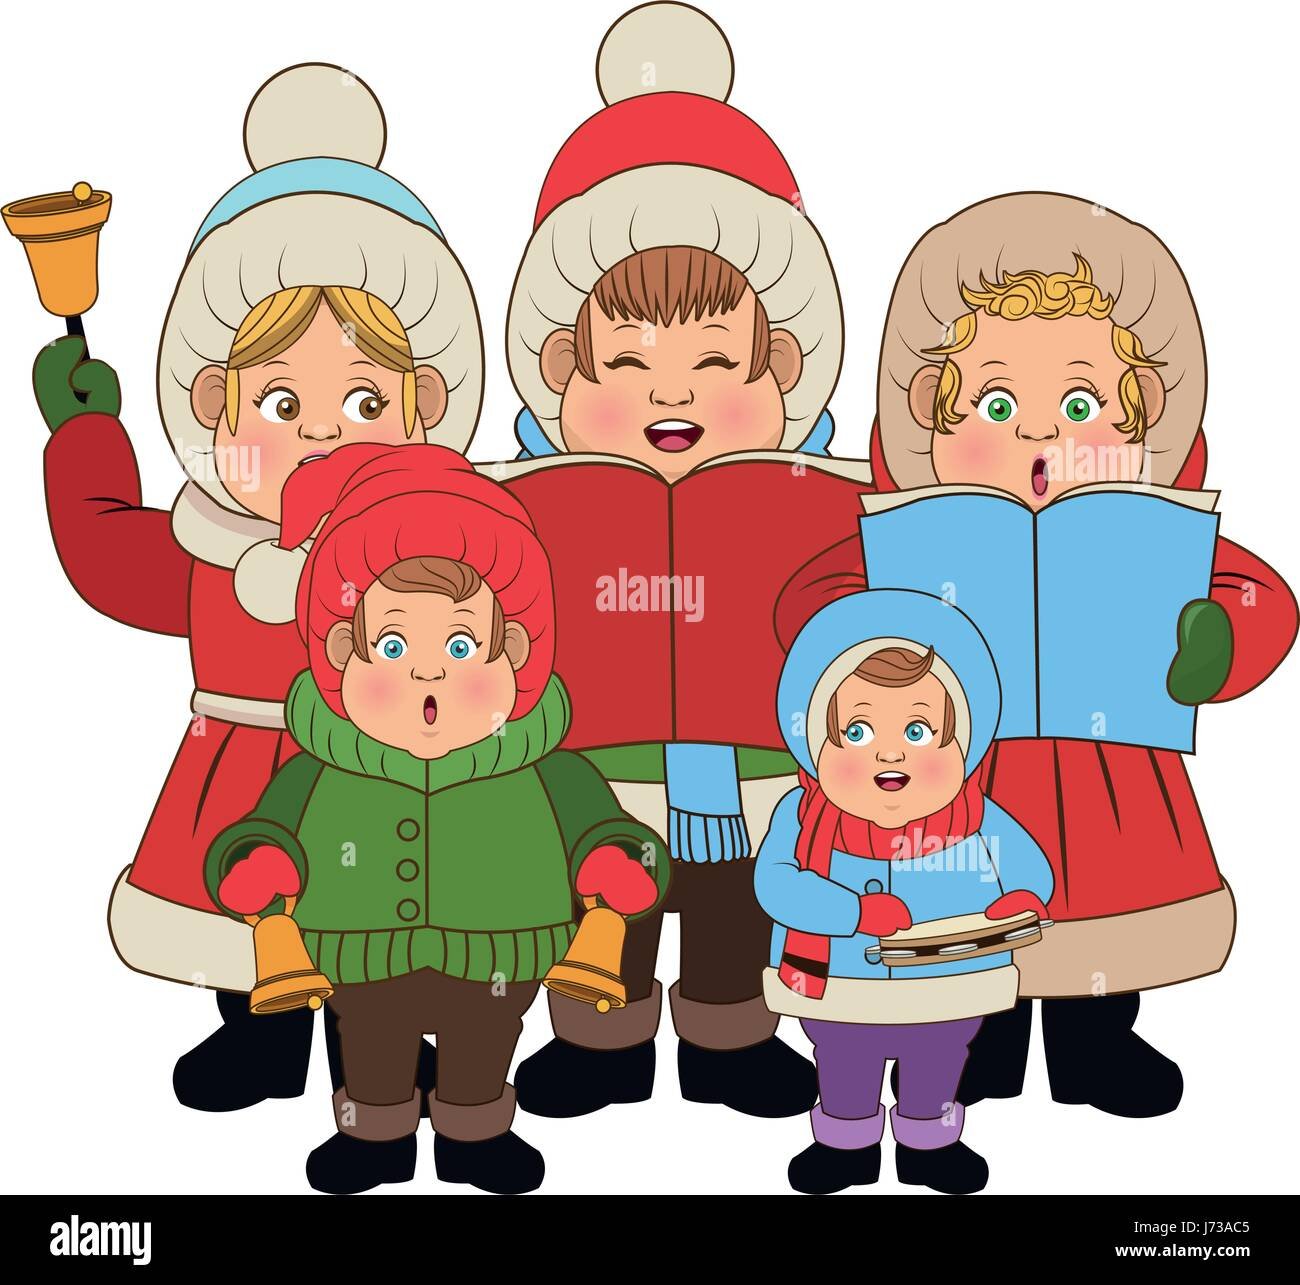 Christmas Singing Images.Group Of People Chorus Singing Christmas Songs Stock Vector